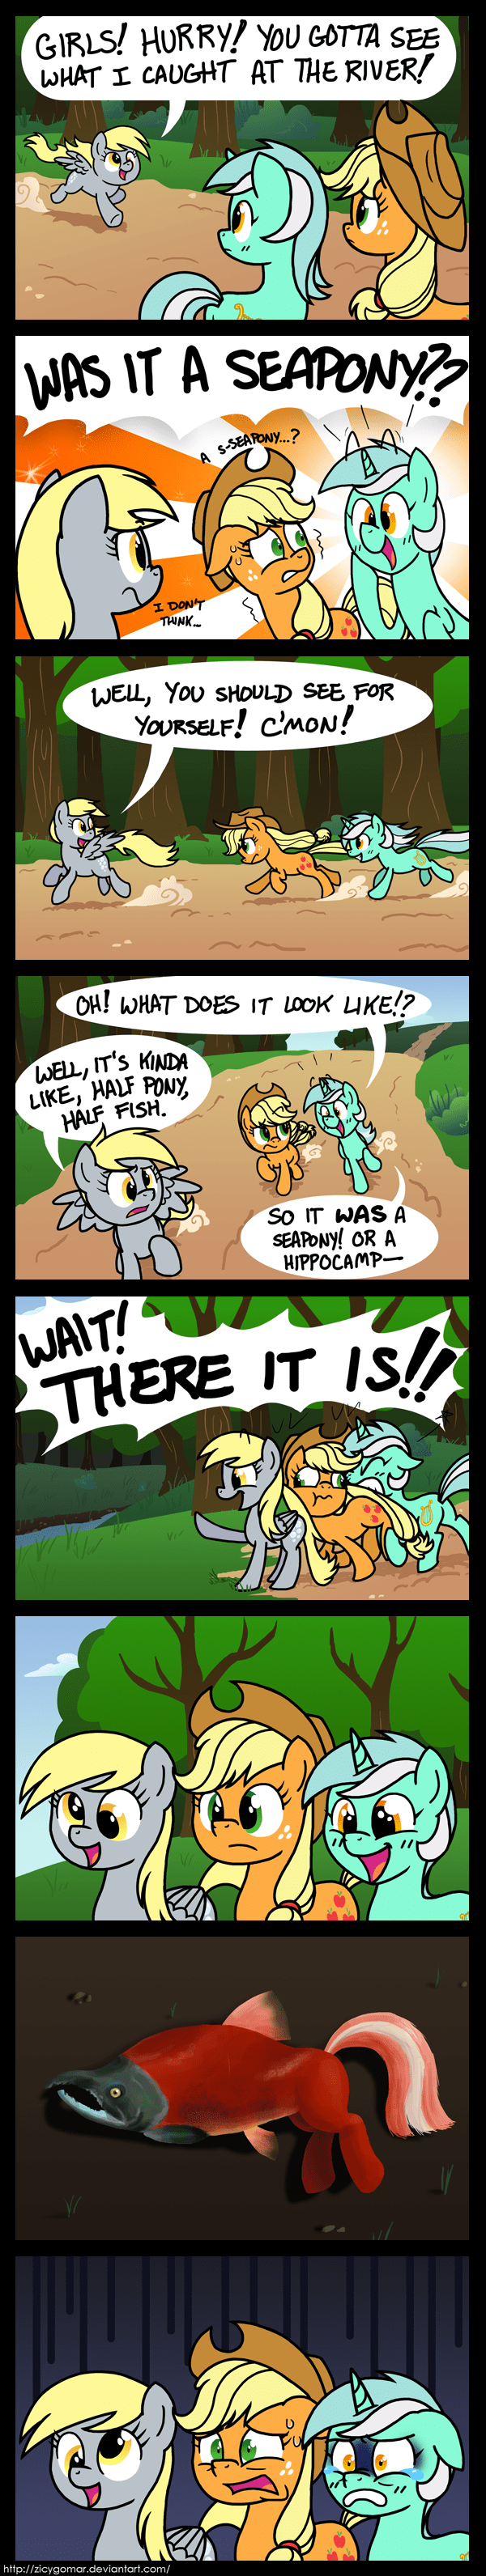 applejack derpy hooves lyra heartstrings - 8582695936